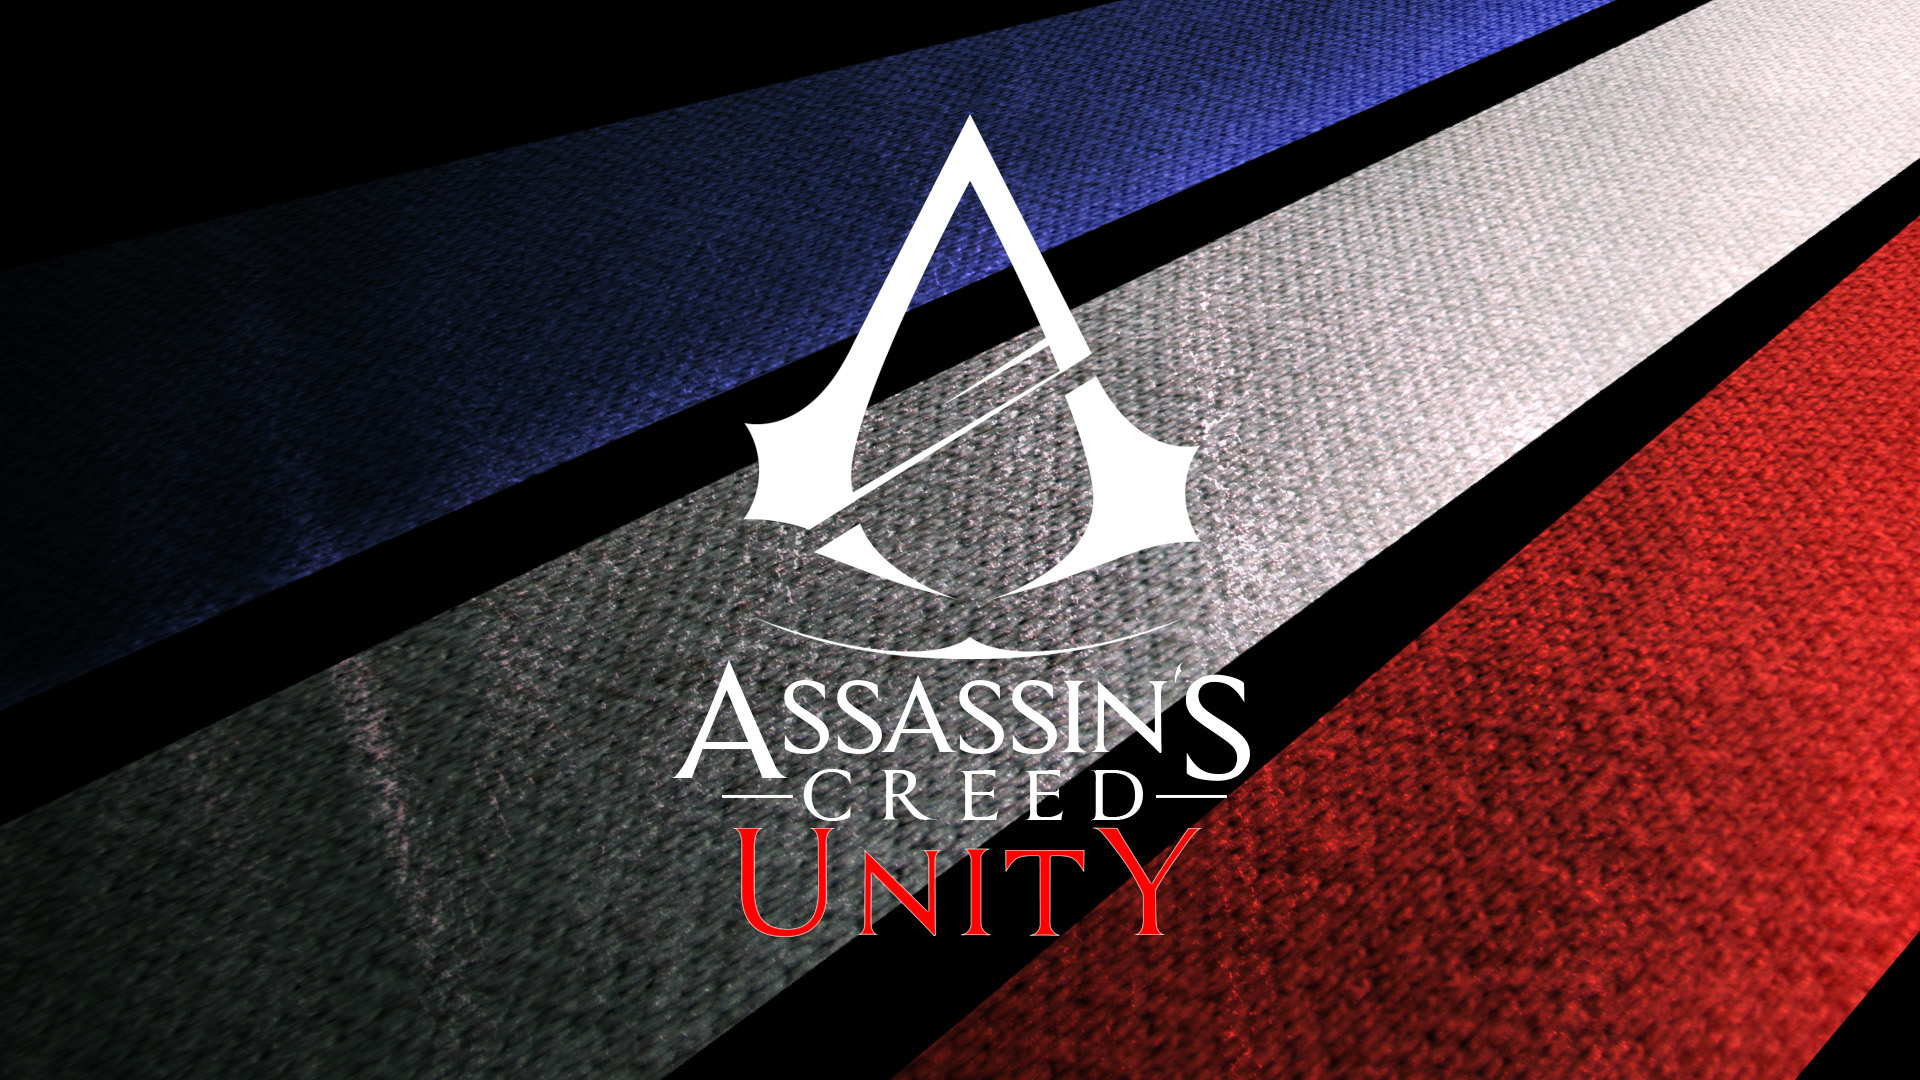 ASSASSIN'S UNITY (DIR: PHOENIX PROJECT)